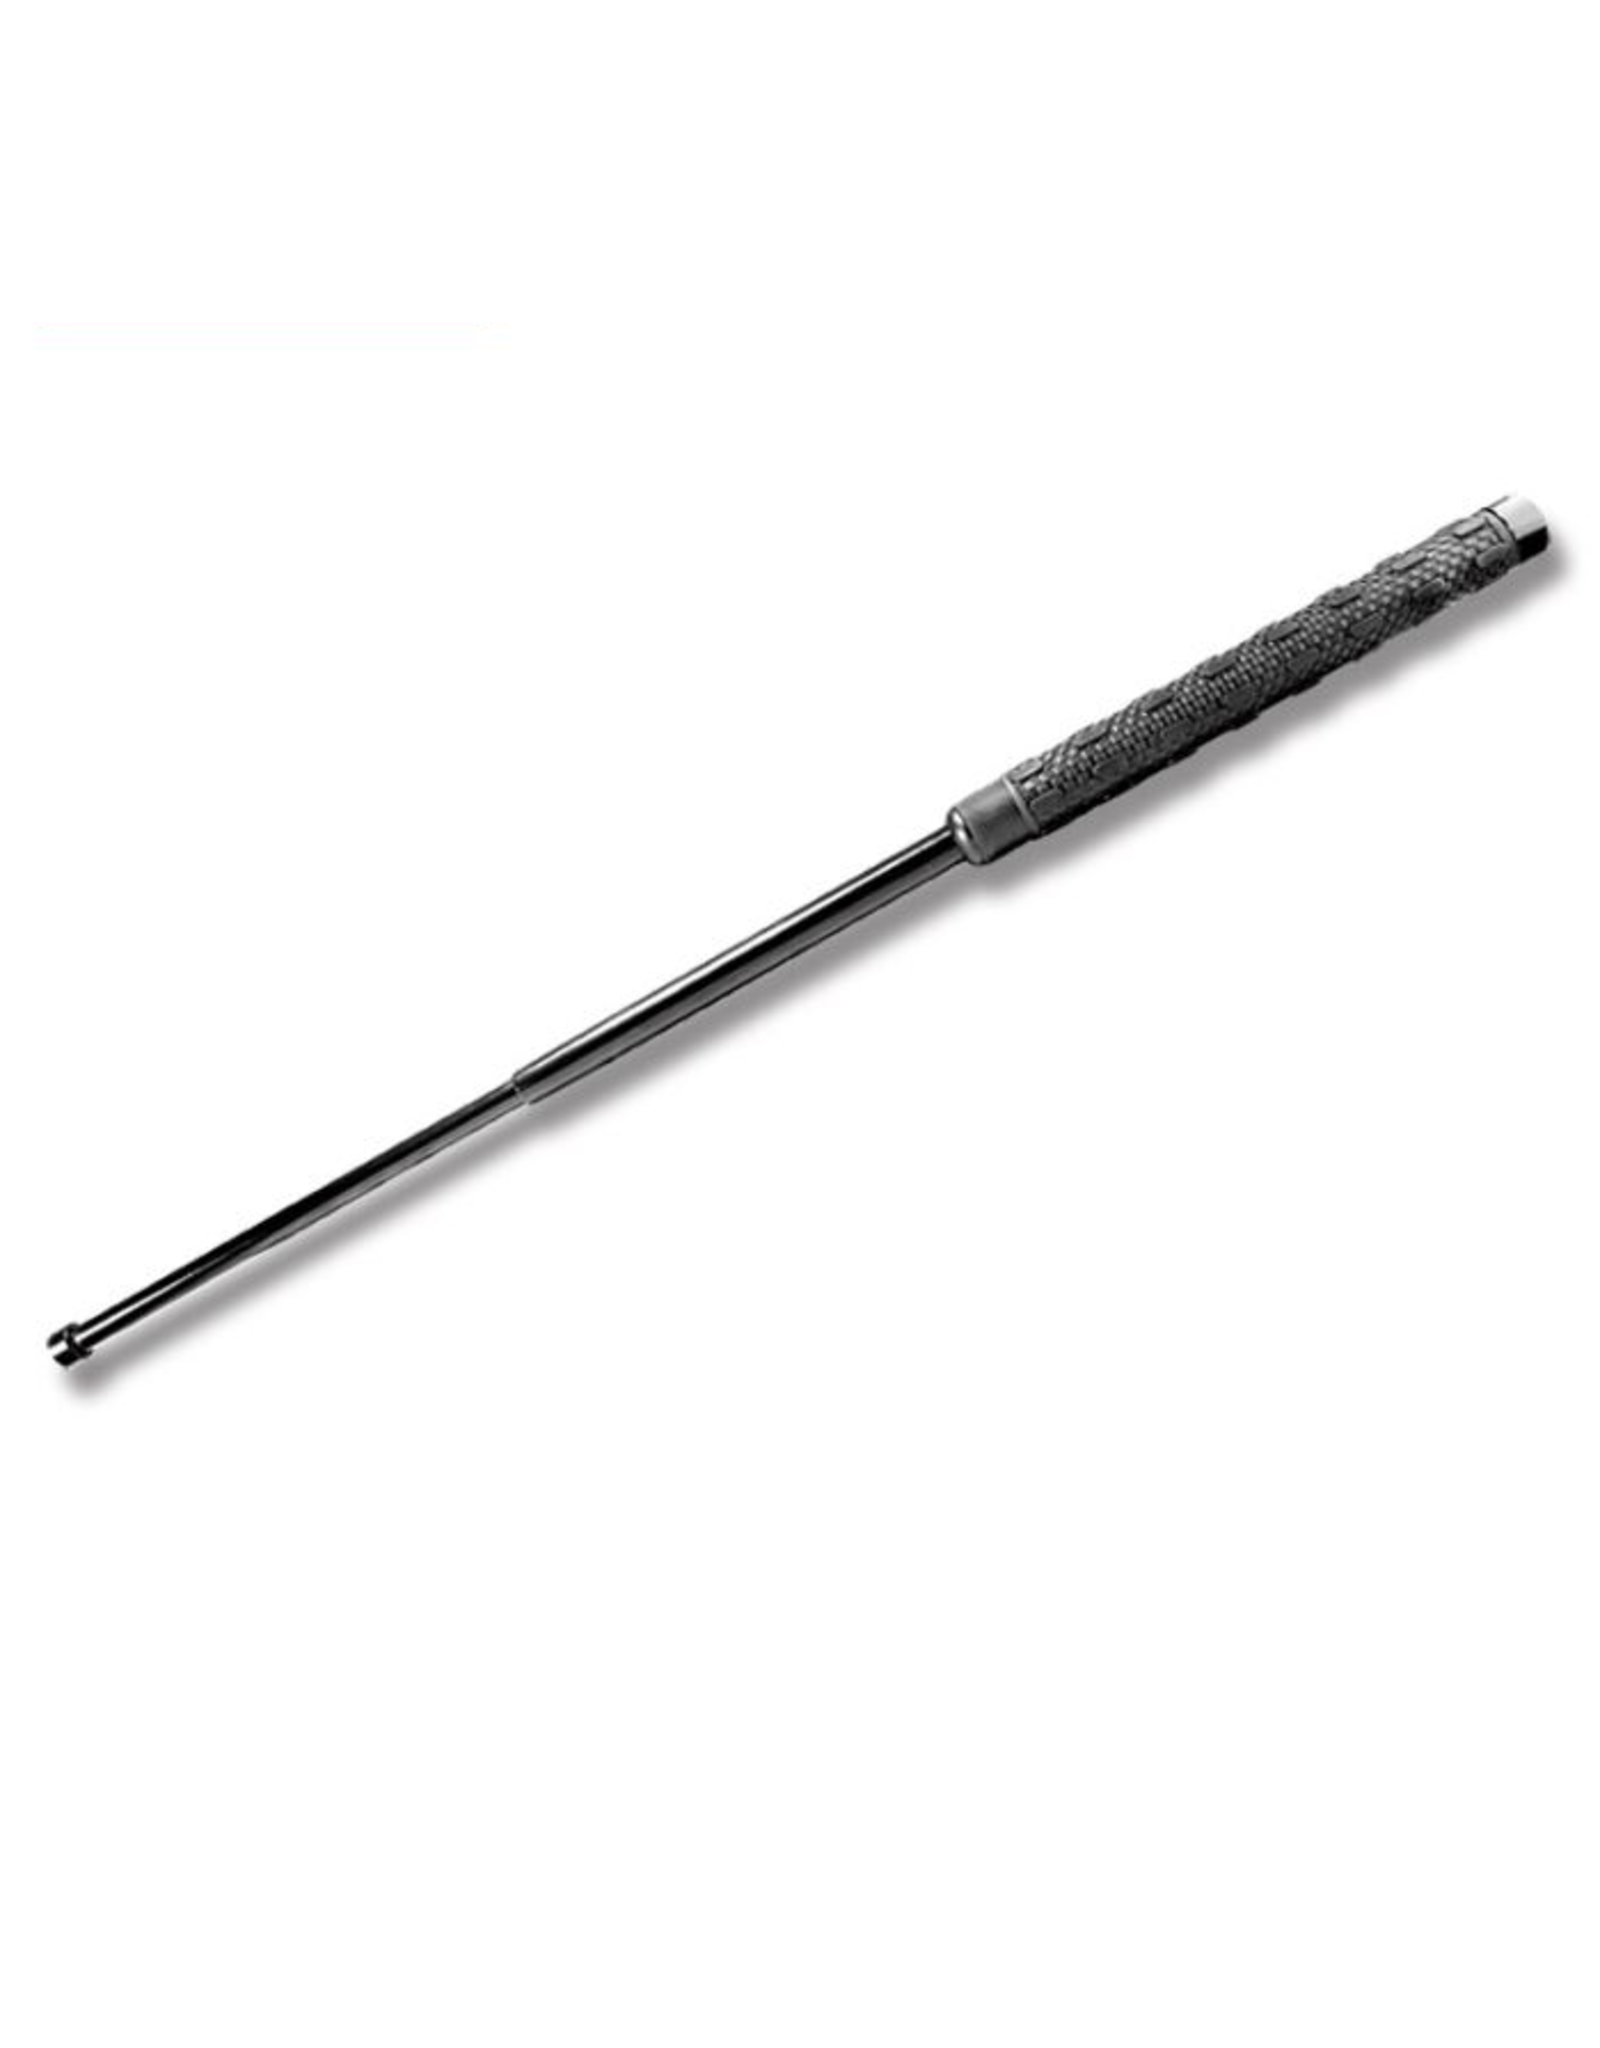 Smith & Wesson Smith and Wesson 21' Baton